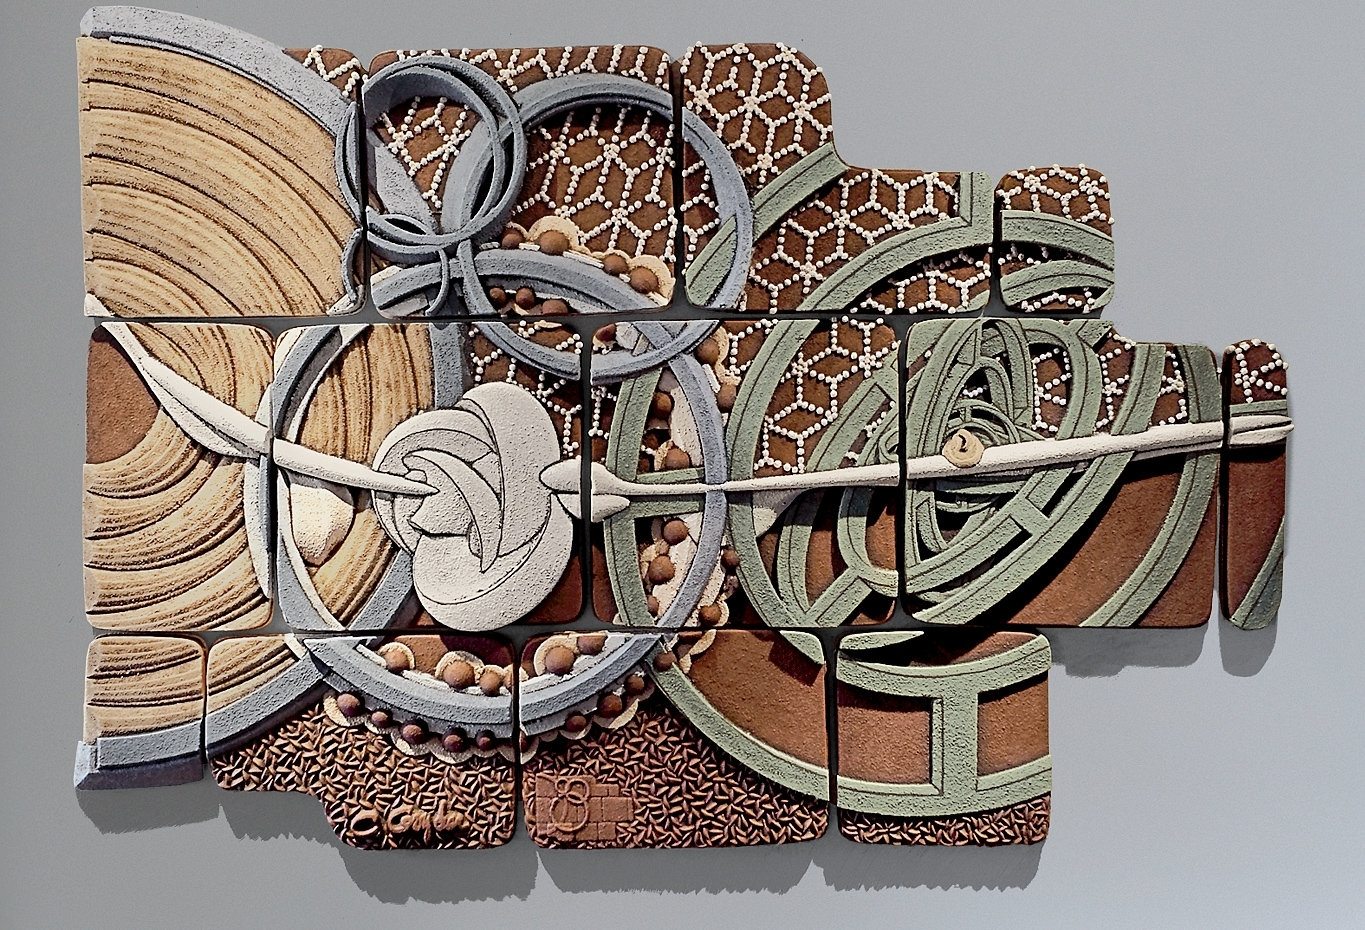 Equisymbrium No. 2Christopher Gryder (Ceramic Wall Sculpture Pertaining To Newest Abstract Ceramic Wall Art (Gallery 2 of 20)